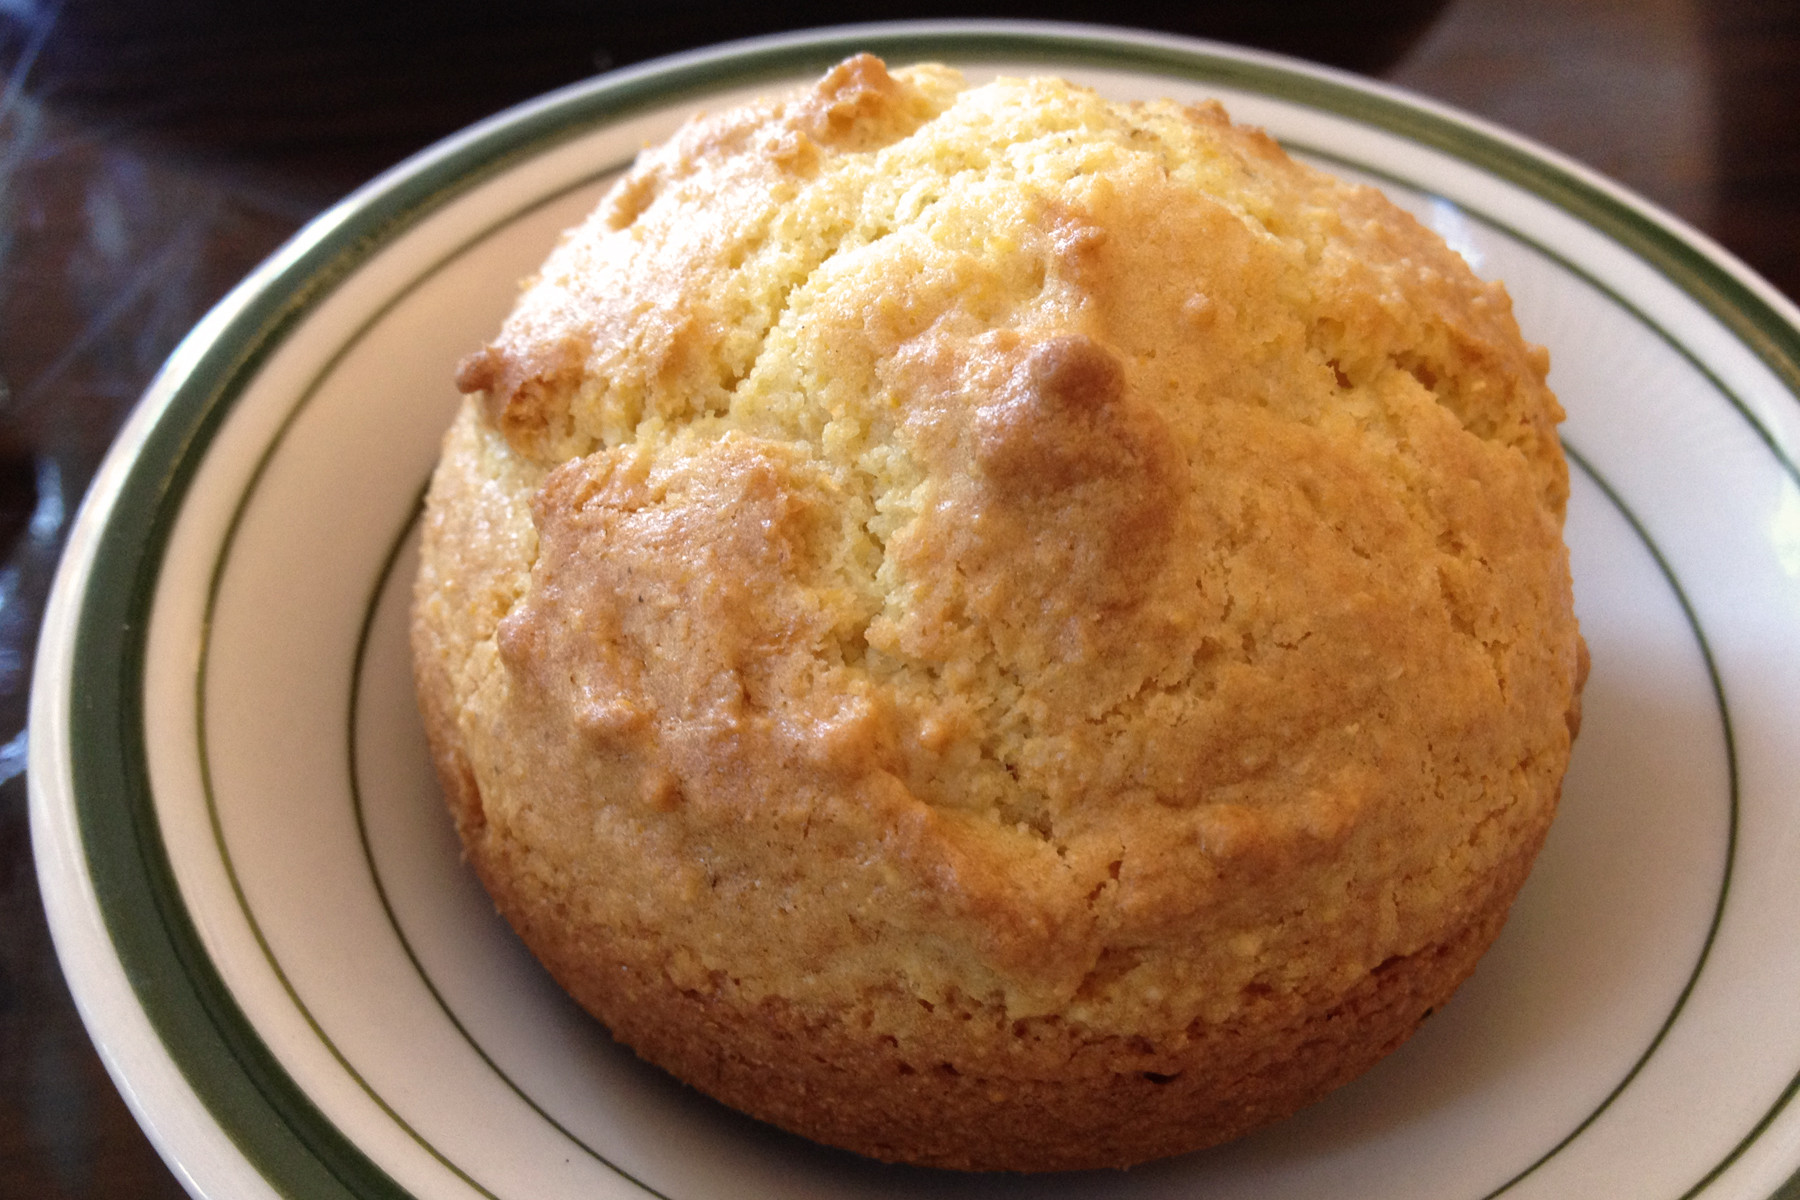 The muffin-shaped cornbread is sweet and moist, with a nice crisp crust.